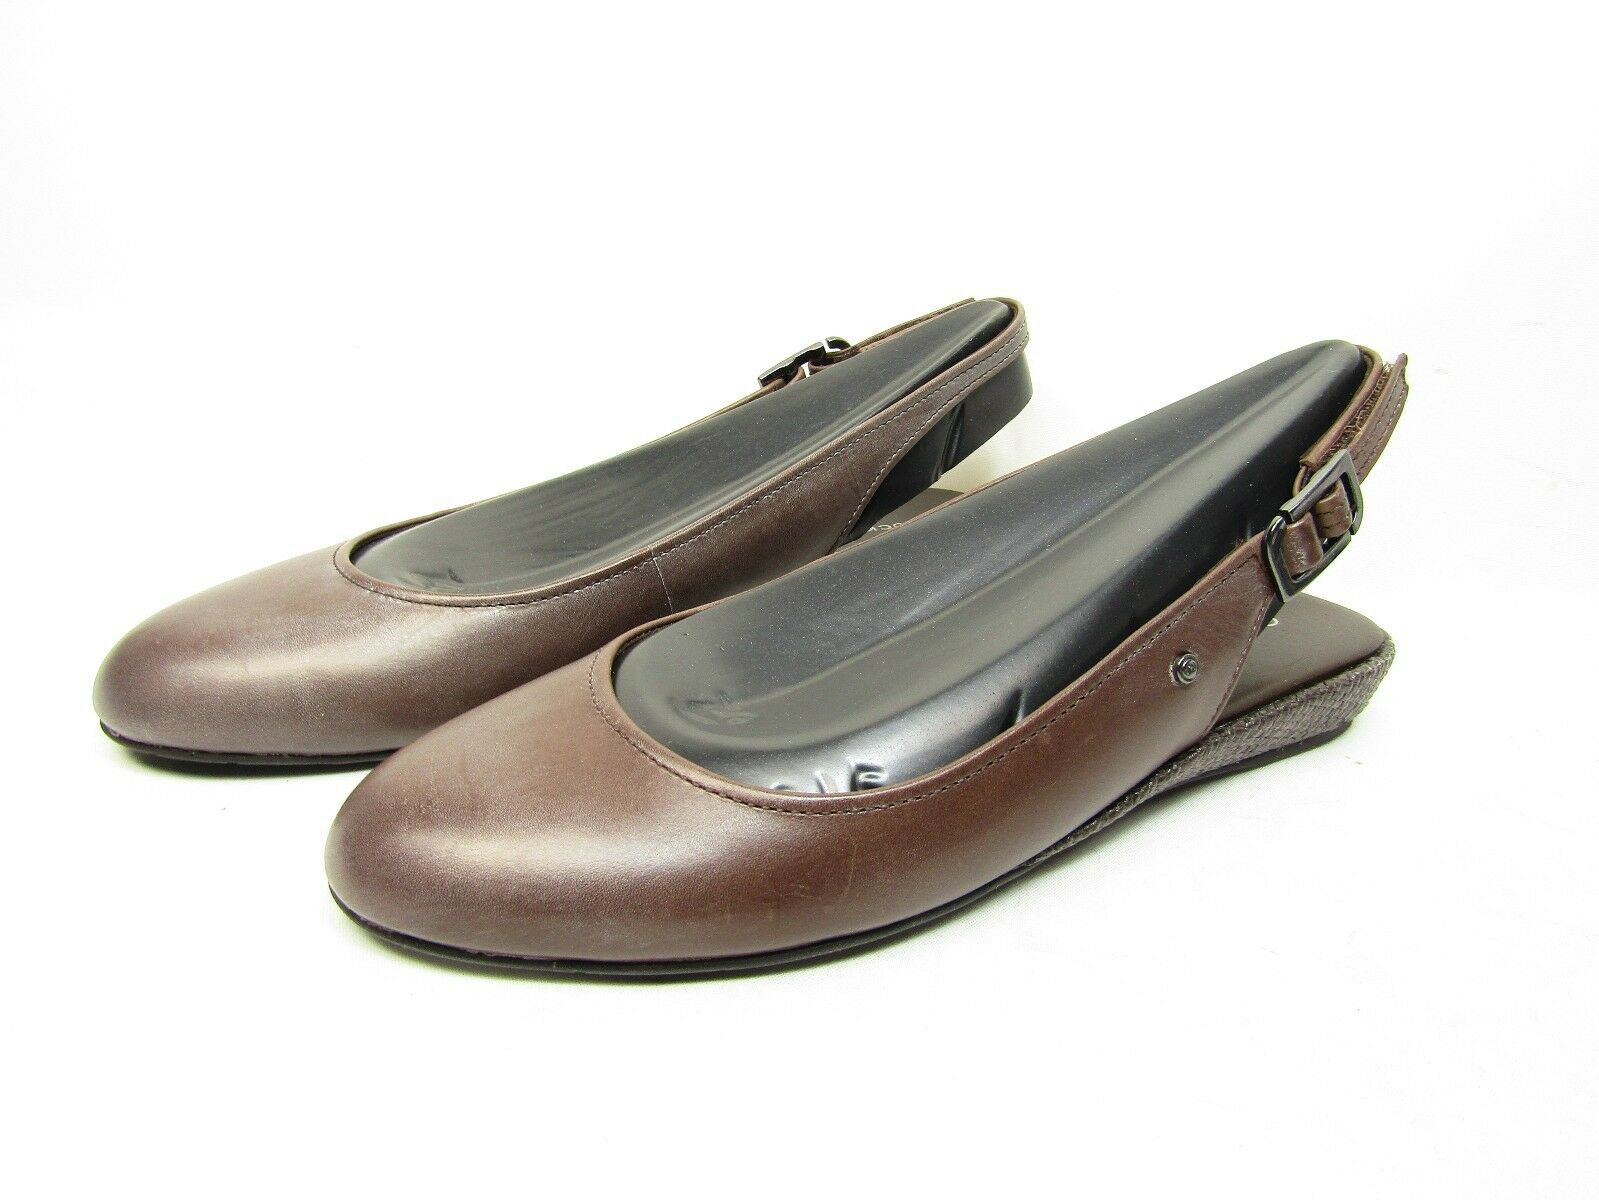 Rockport  Ella II Women's shoes  Sandals Ballerinas  Slingback Brown Size 6.5M